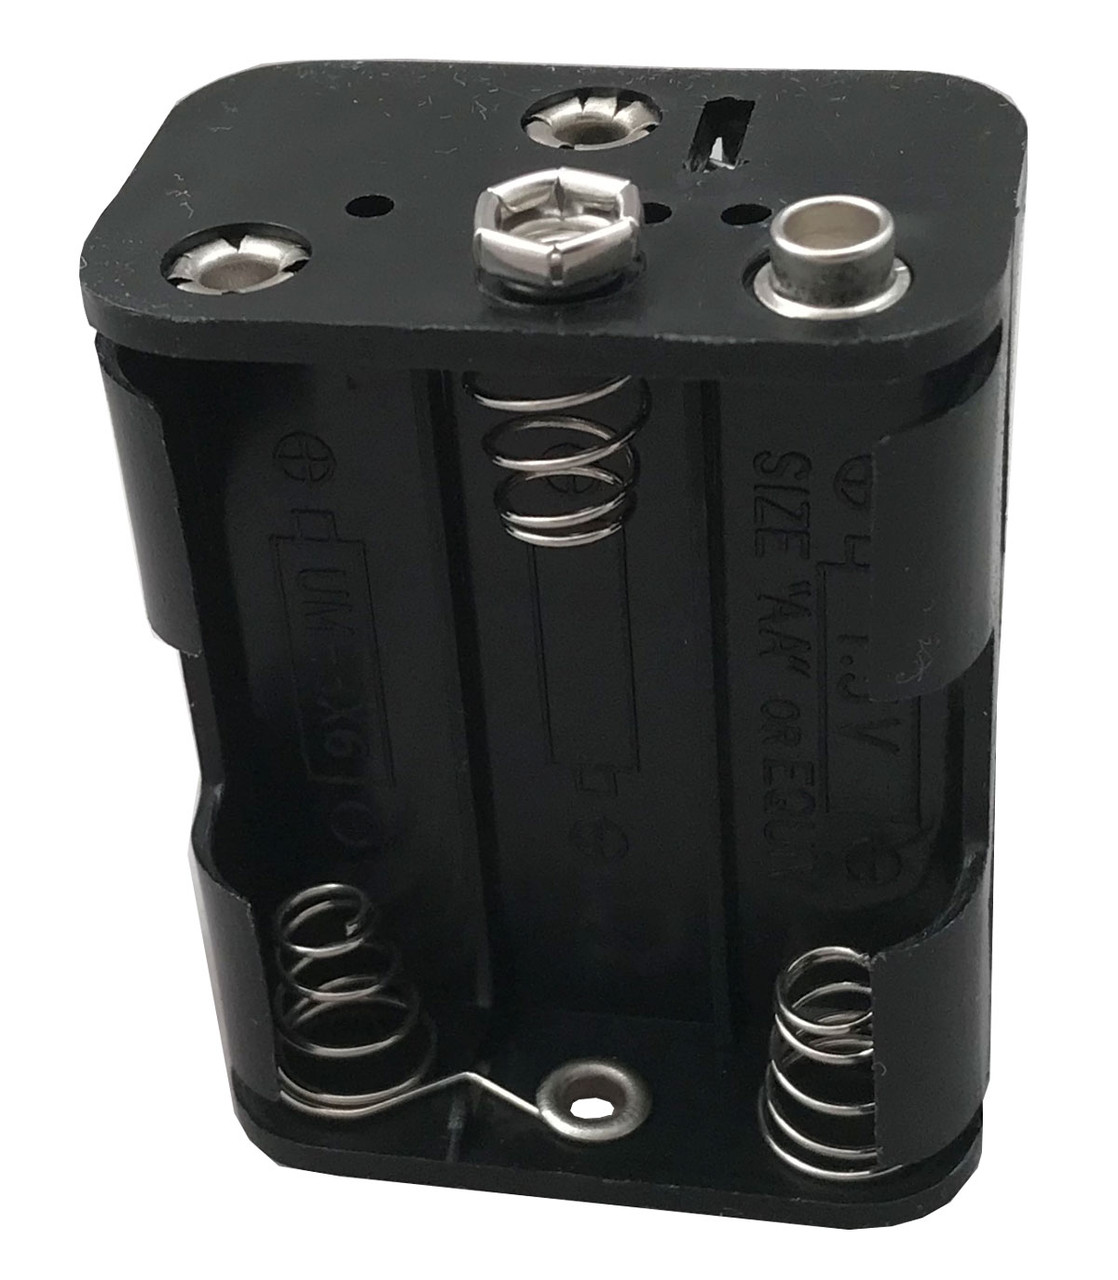 9-volt battery box offers savings and longer life